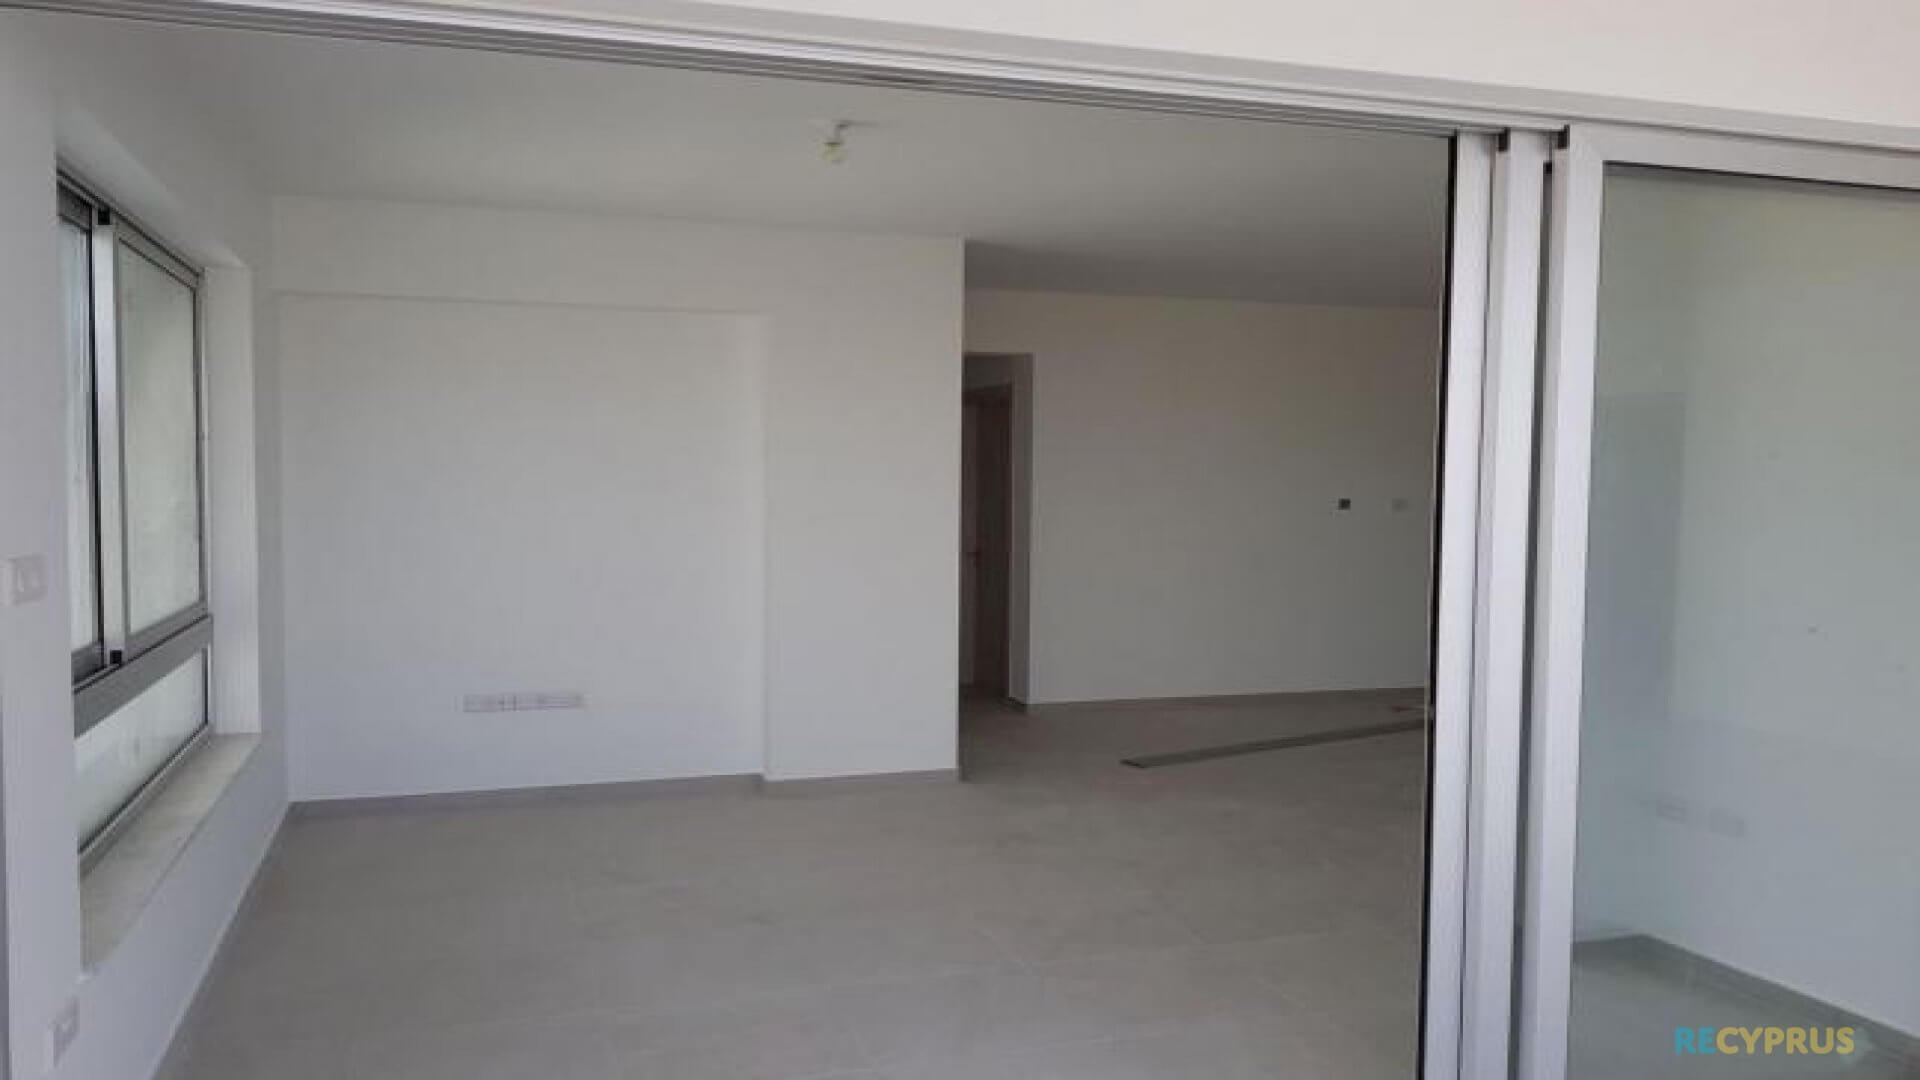 Apartment for sale City Center Larnaca Cyprus 6 3585